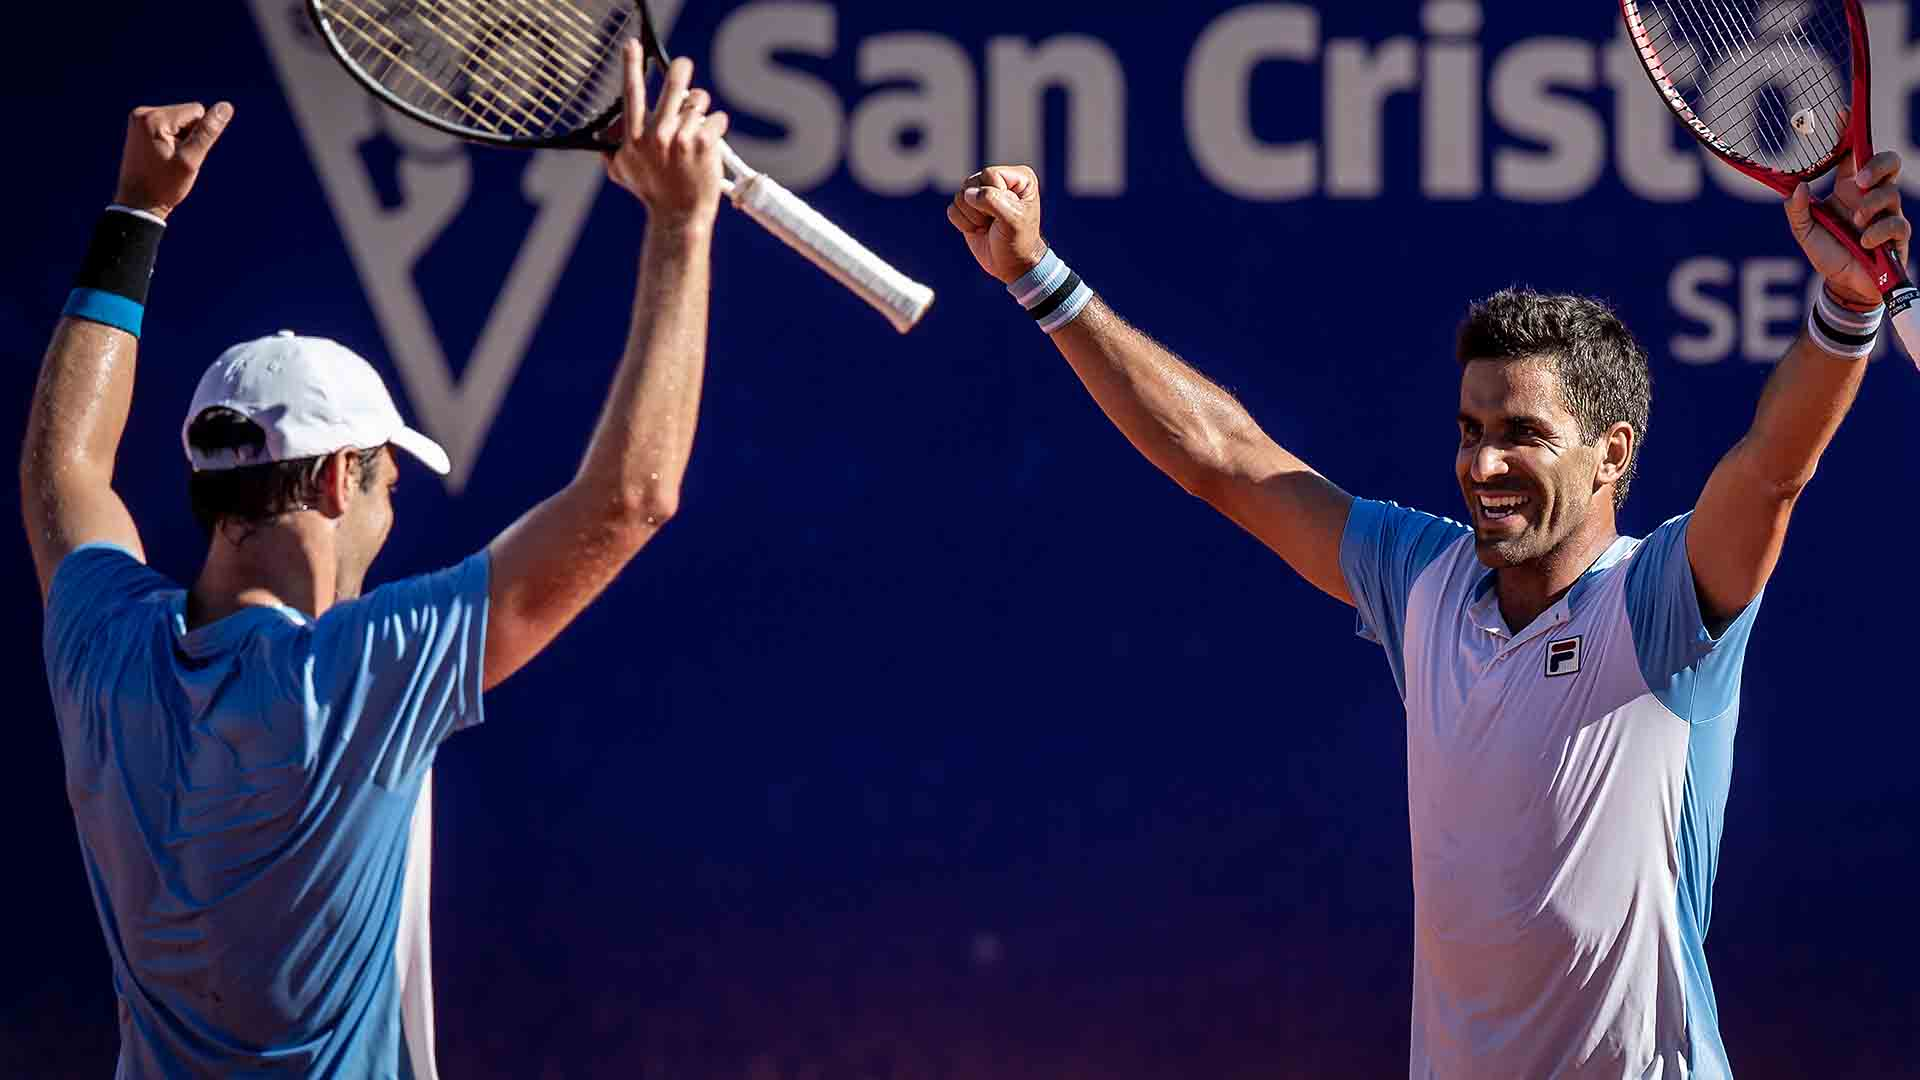 Horacio Zeballos and Maximo Gonzalez win their maiden ATP Tour title as a team at the Argentina Open on Sunday.